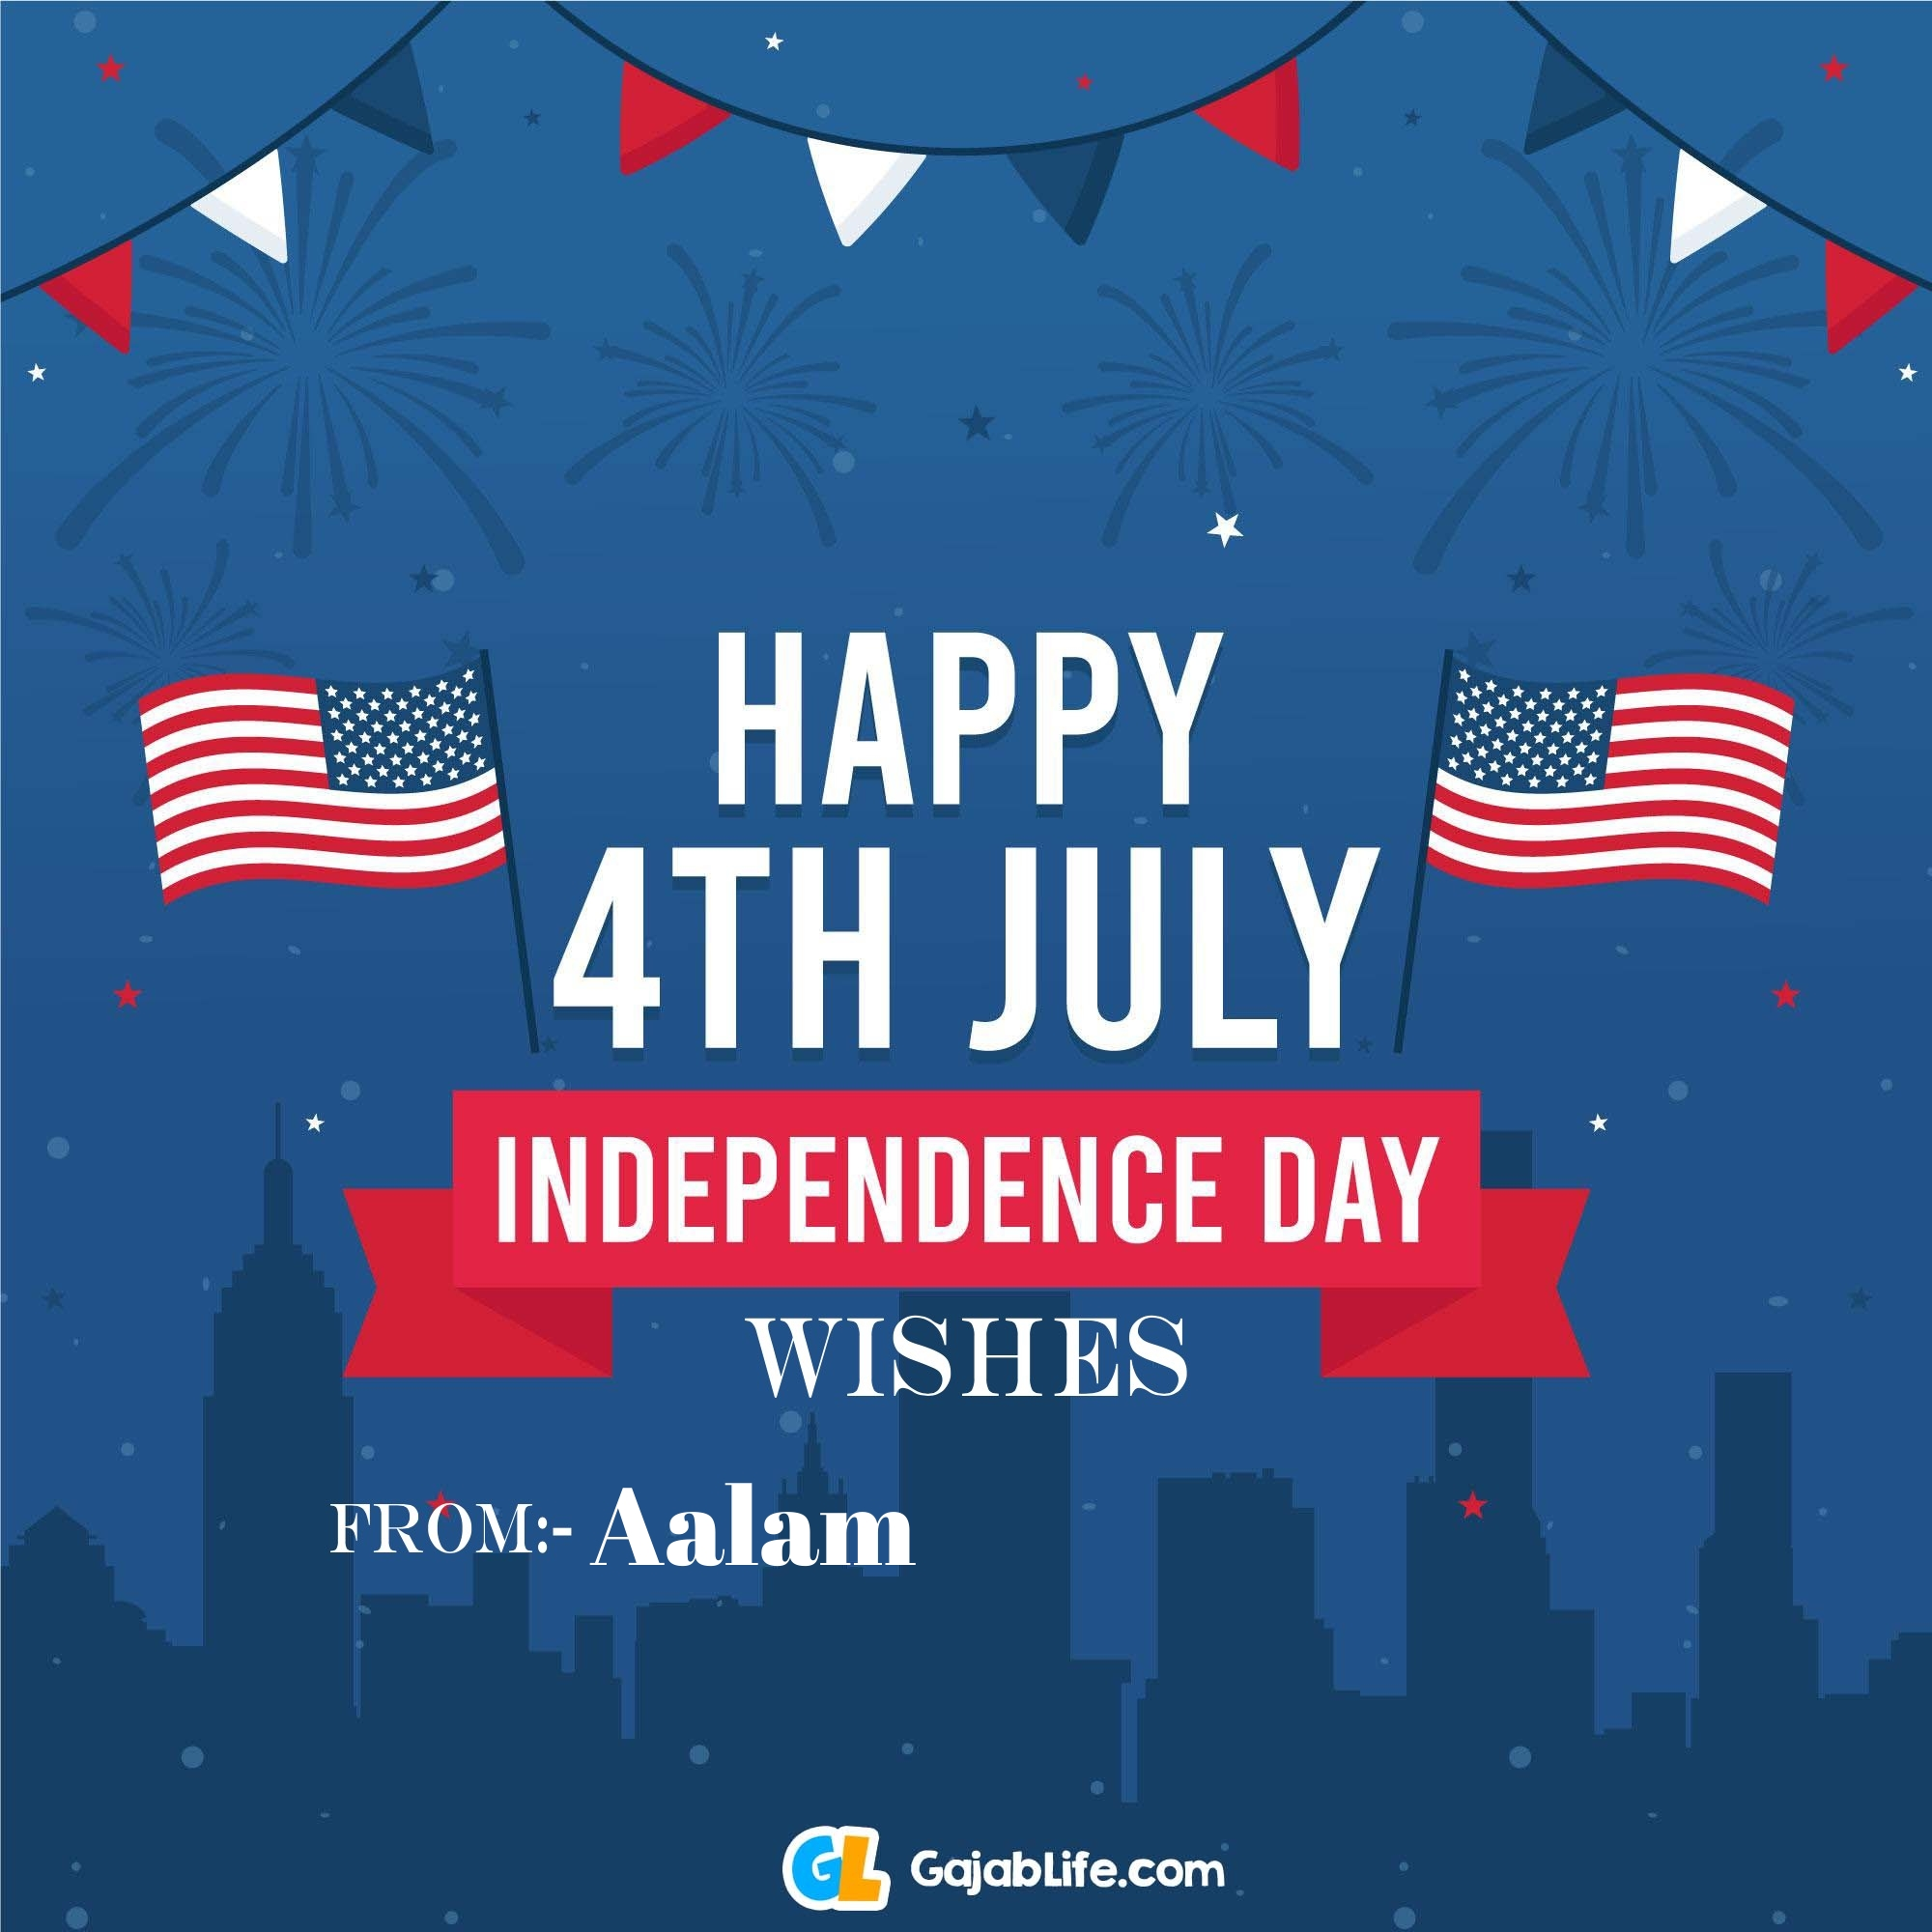 Aalam happy independence day united states of america images